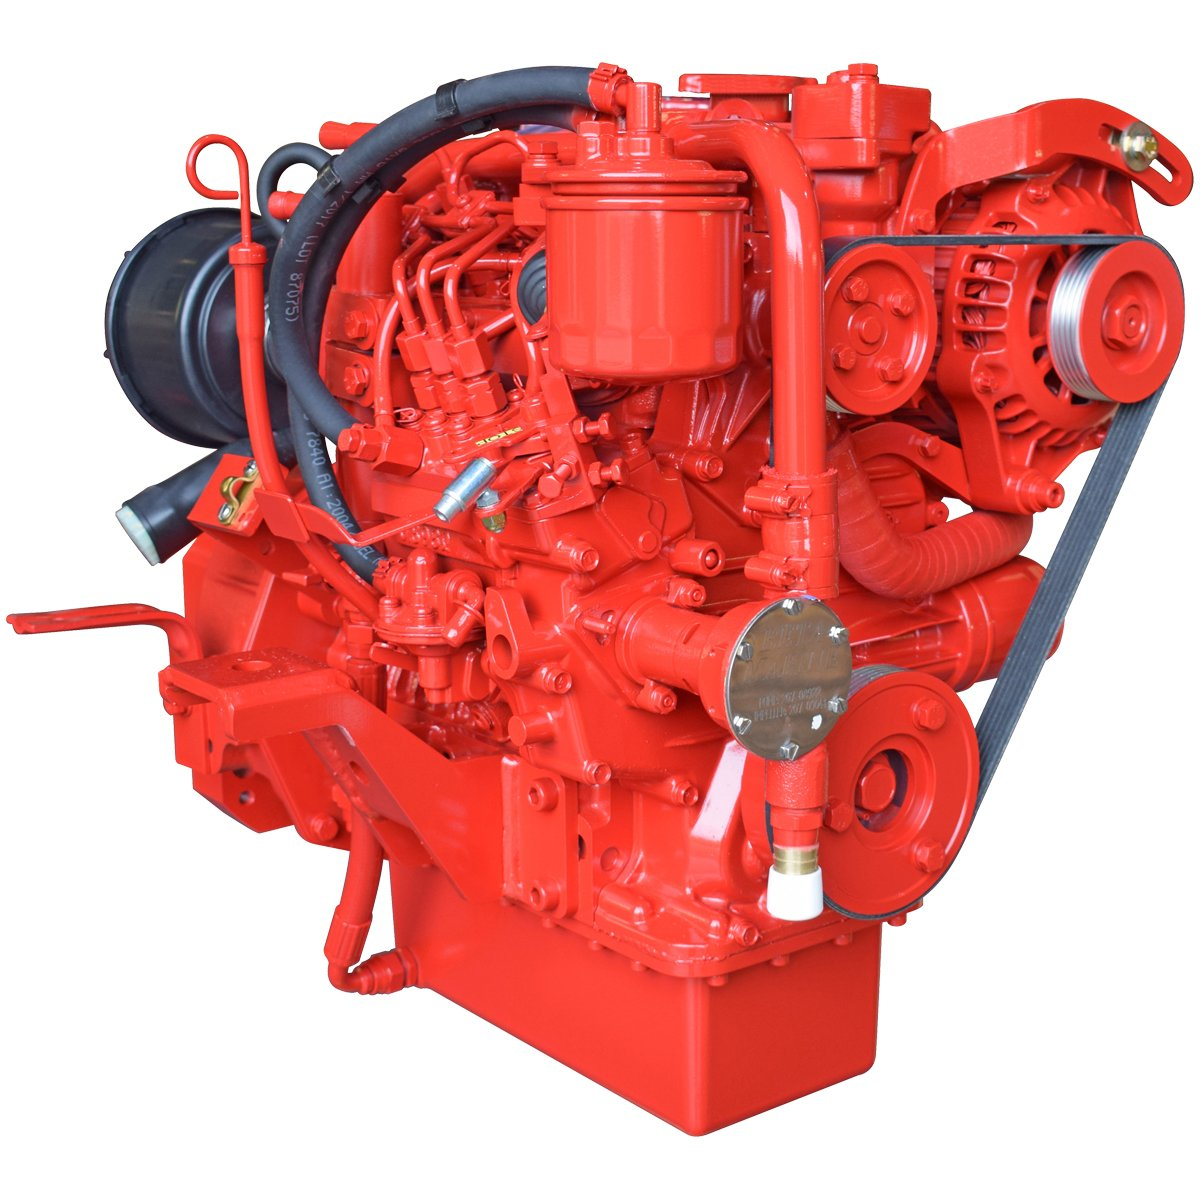 Beta Marine USA - marine diesel saildrive engines - Beta 25SD heat exchanger saildrive engine